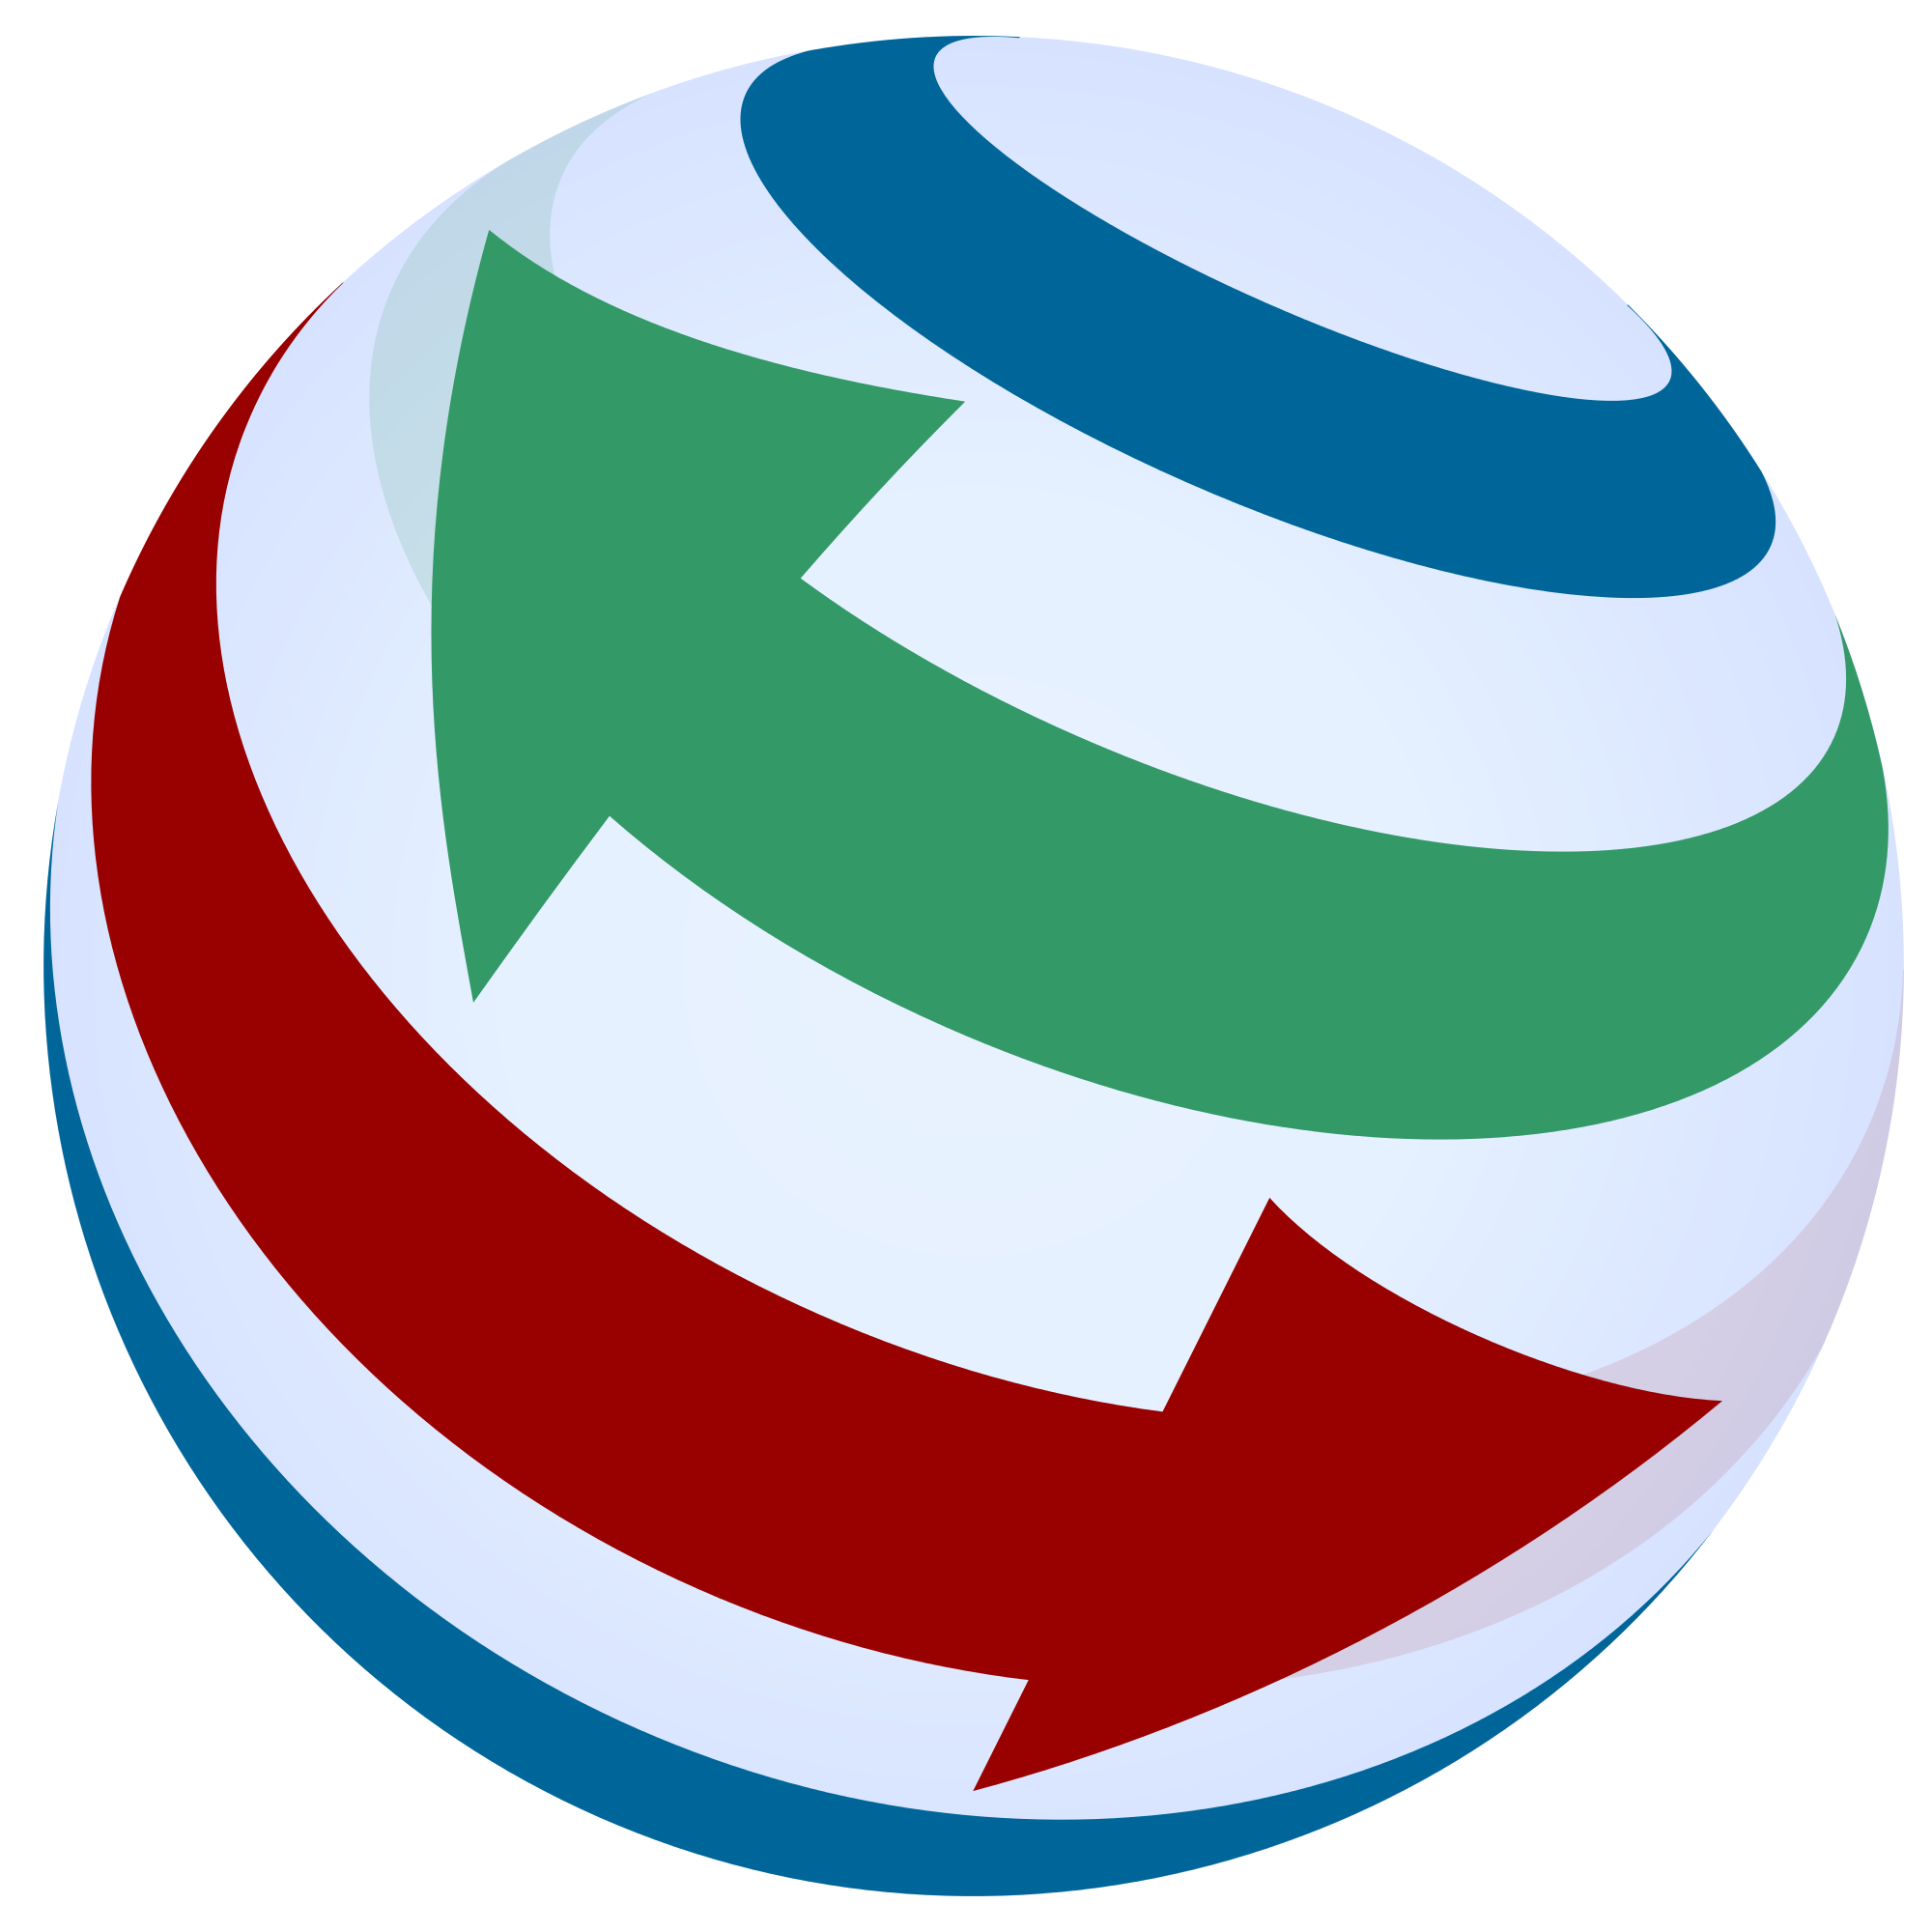 Planet clipart blue planet. File wikivoyage logo round